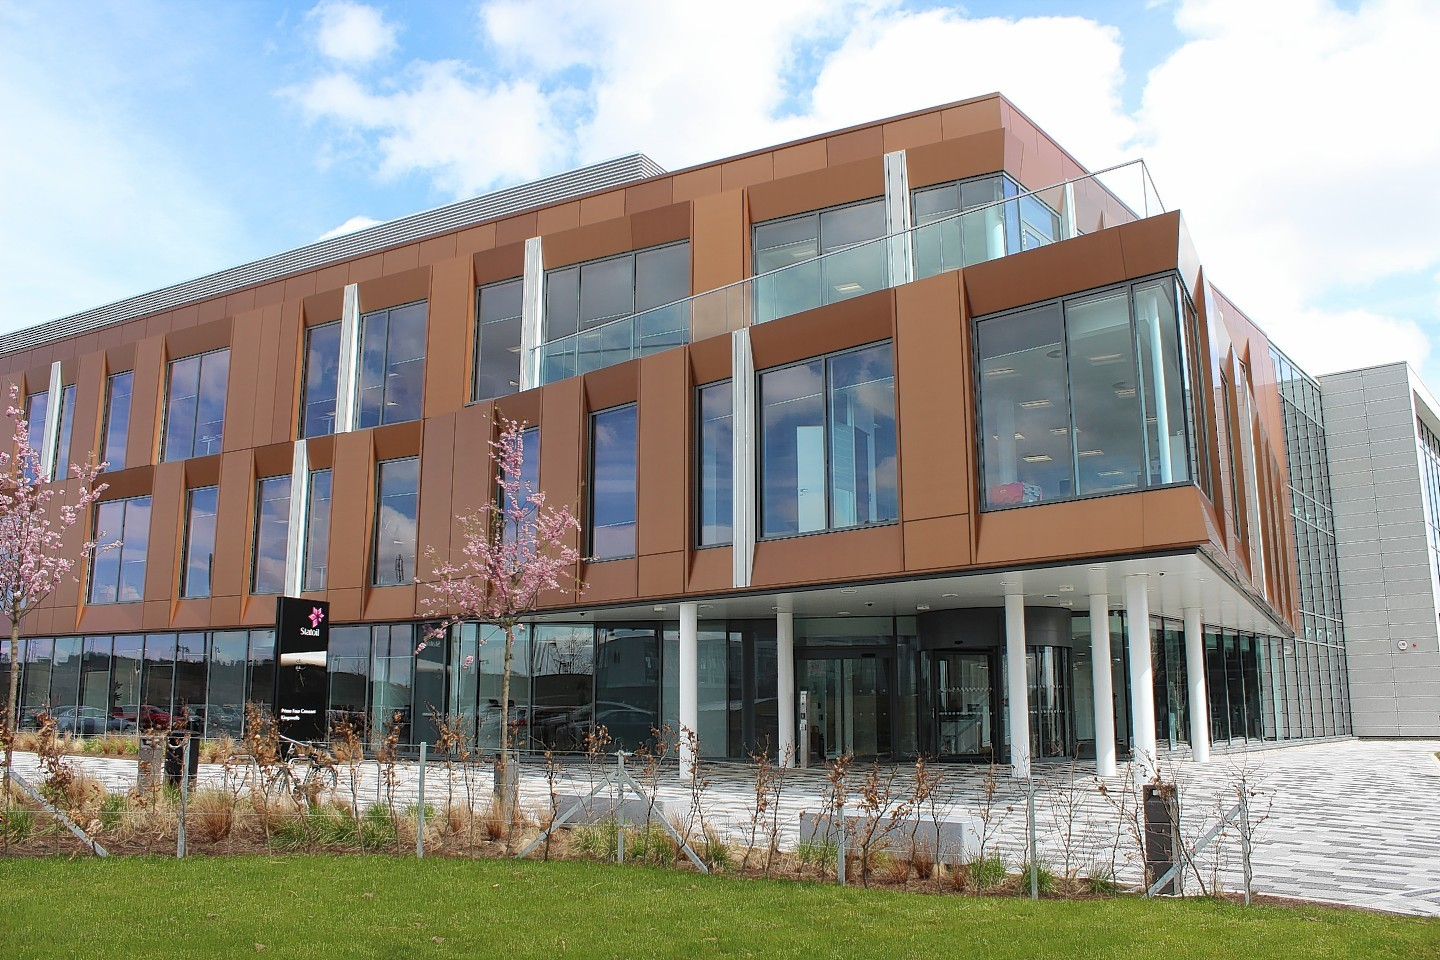 Statoil have moved to new offices in the Prime Four business park at Kingswells